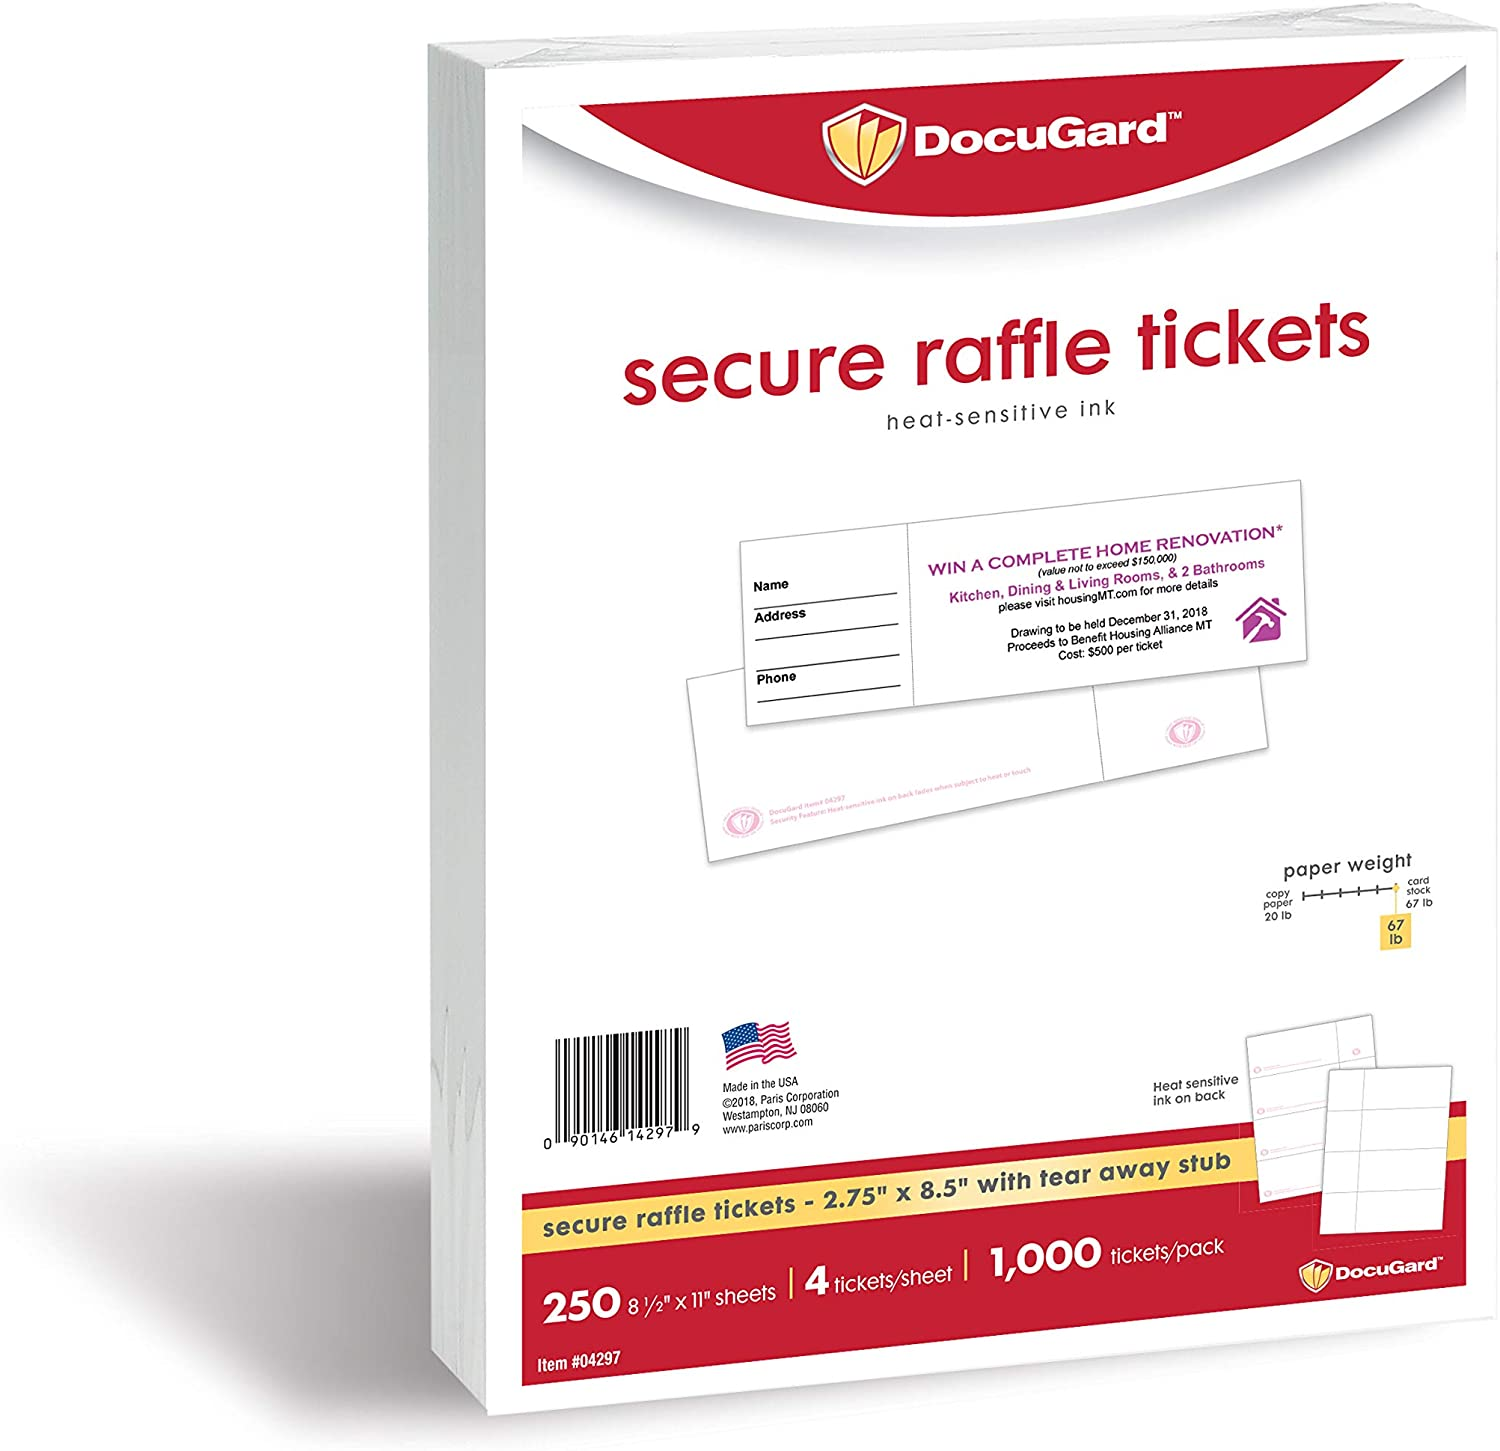 DocuGard Secure Raffle Tickets with Heat Sensitive Ink, Tear-Away Stubs, 8.5 x 11, 67 lb Card Stock, 4 Tickets Per Sheet, 250 Sheets, 1000 Tickets, (04297) (2.75 x 8.5)